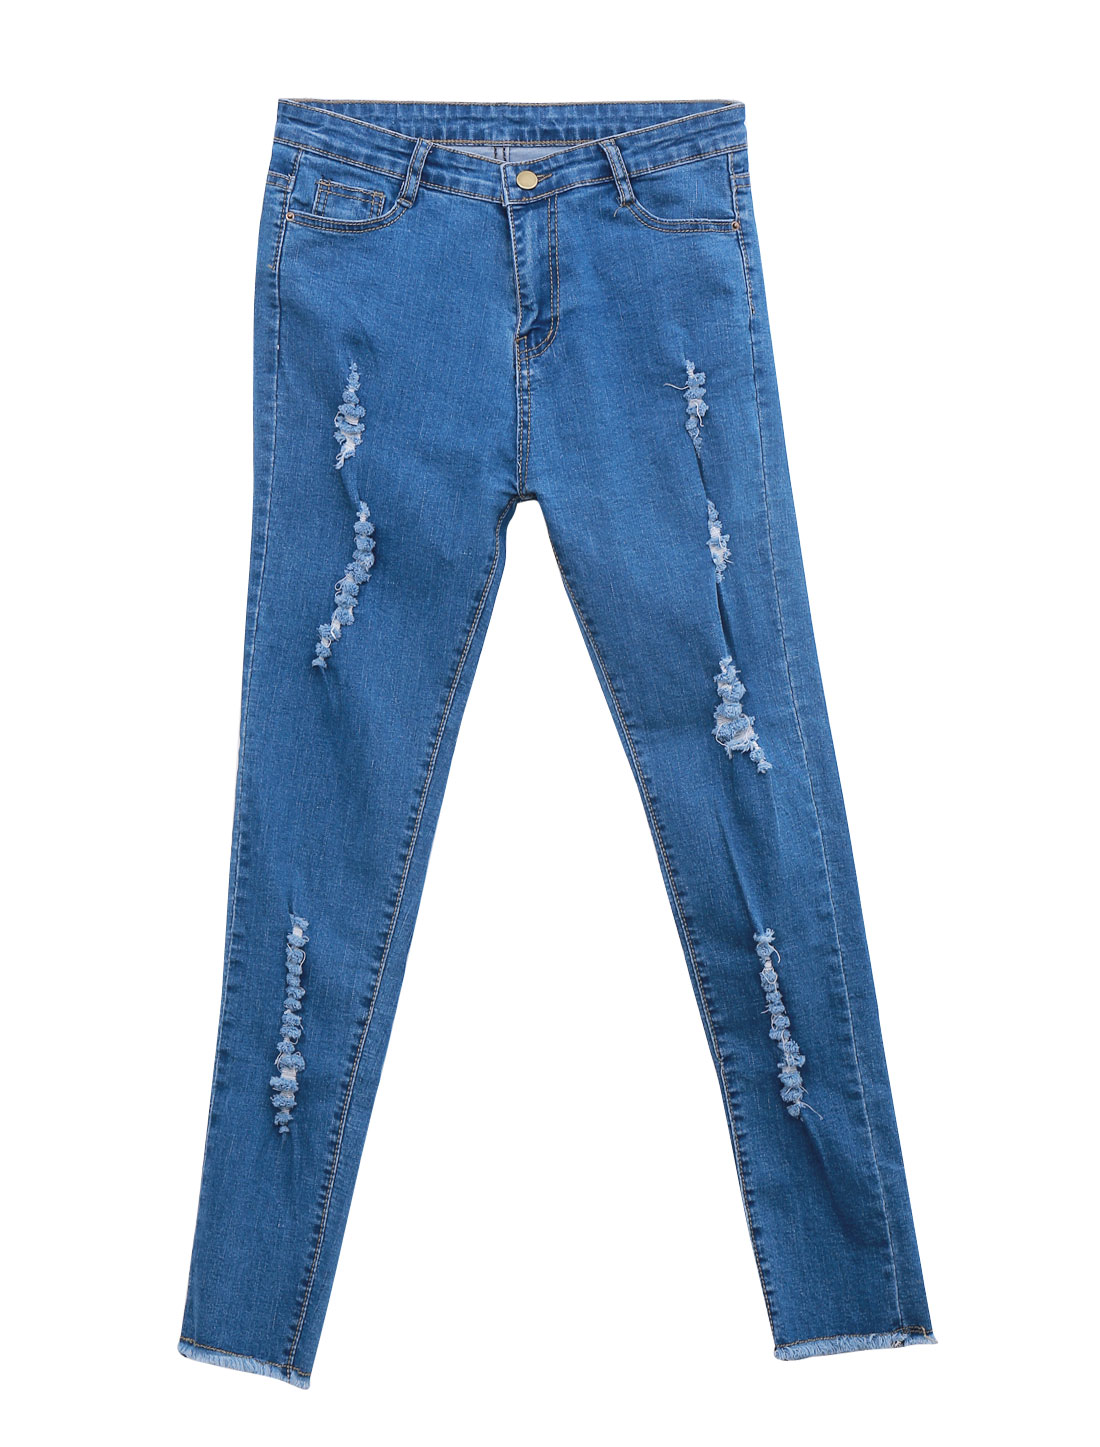 Lady Destroyed Design Tassel Cuffs Patch Pockets Back Fashion Jeans Blue M